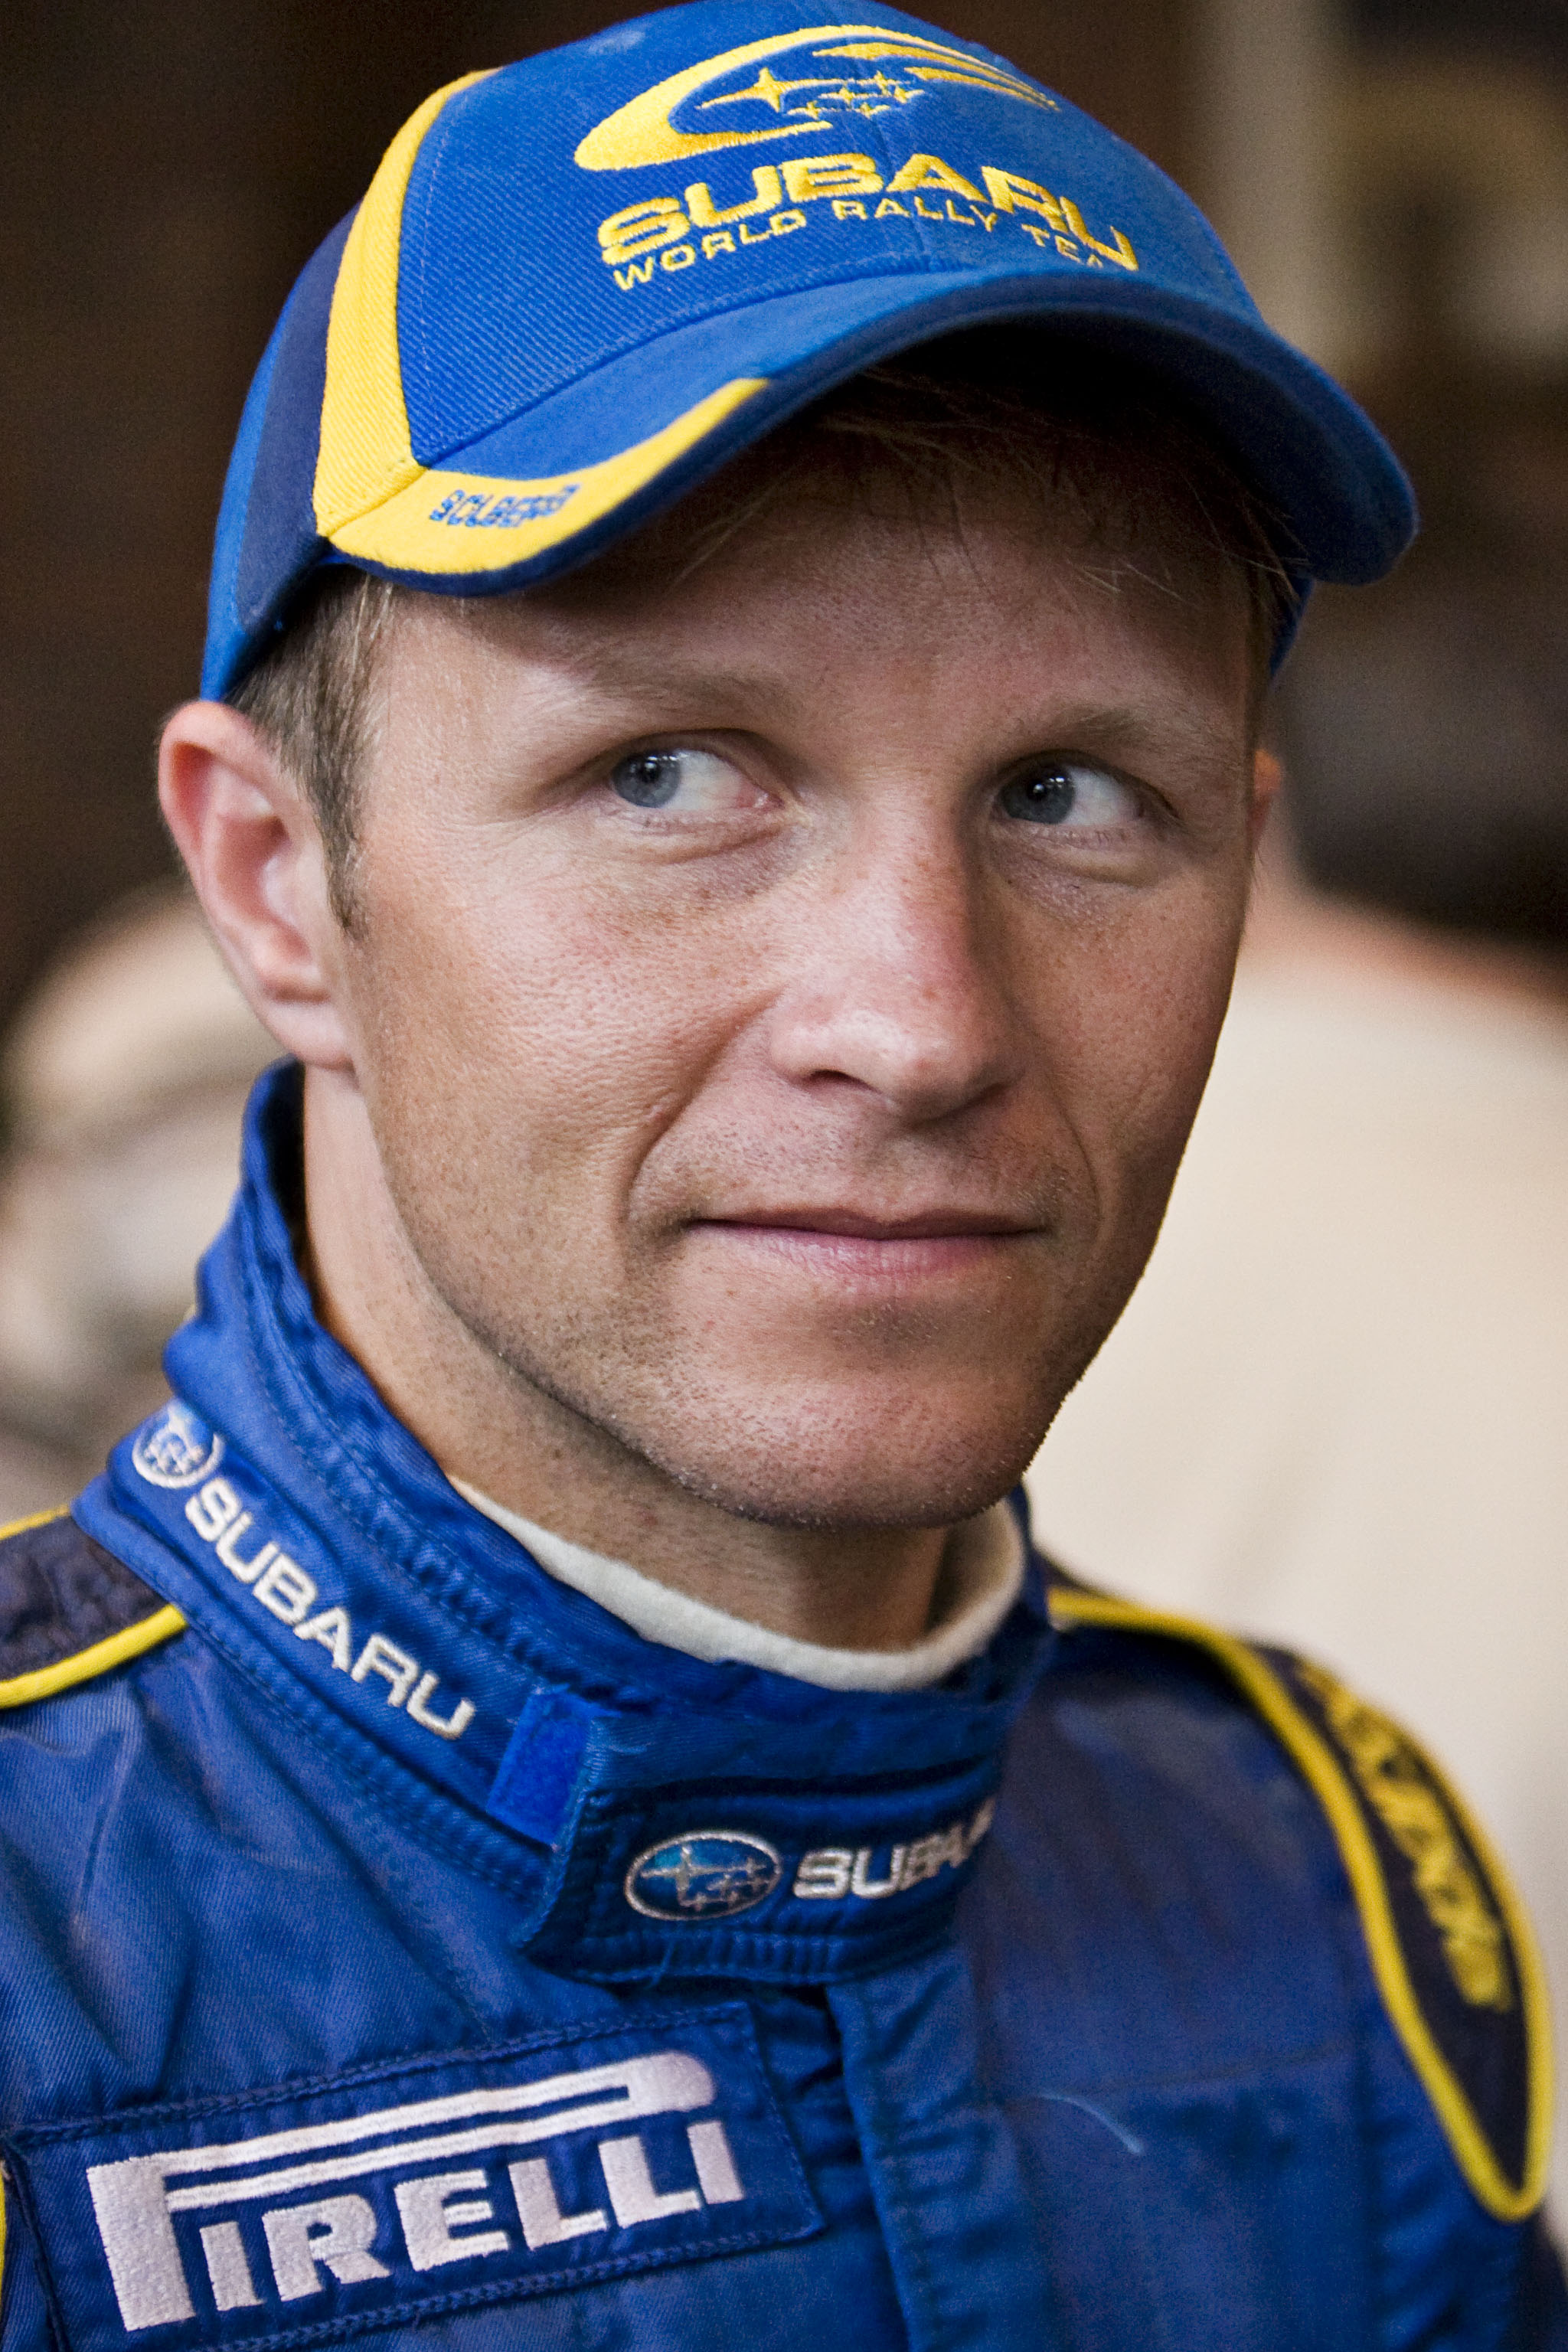 Petter Solberg net worth